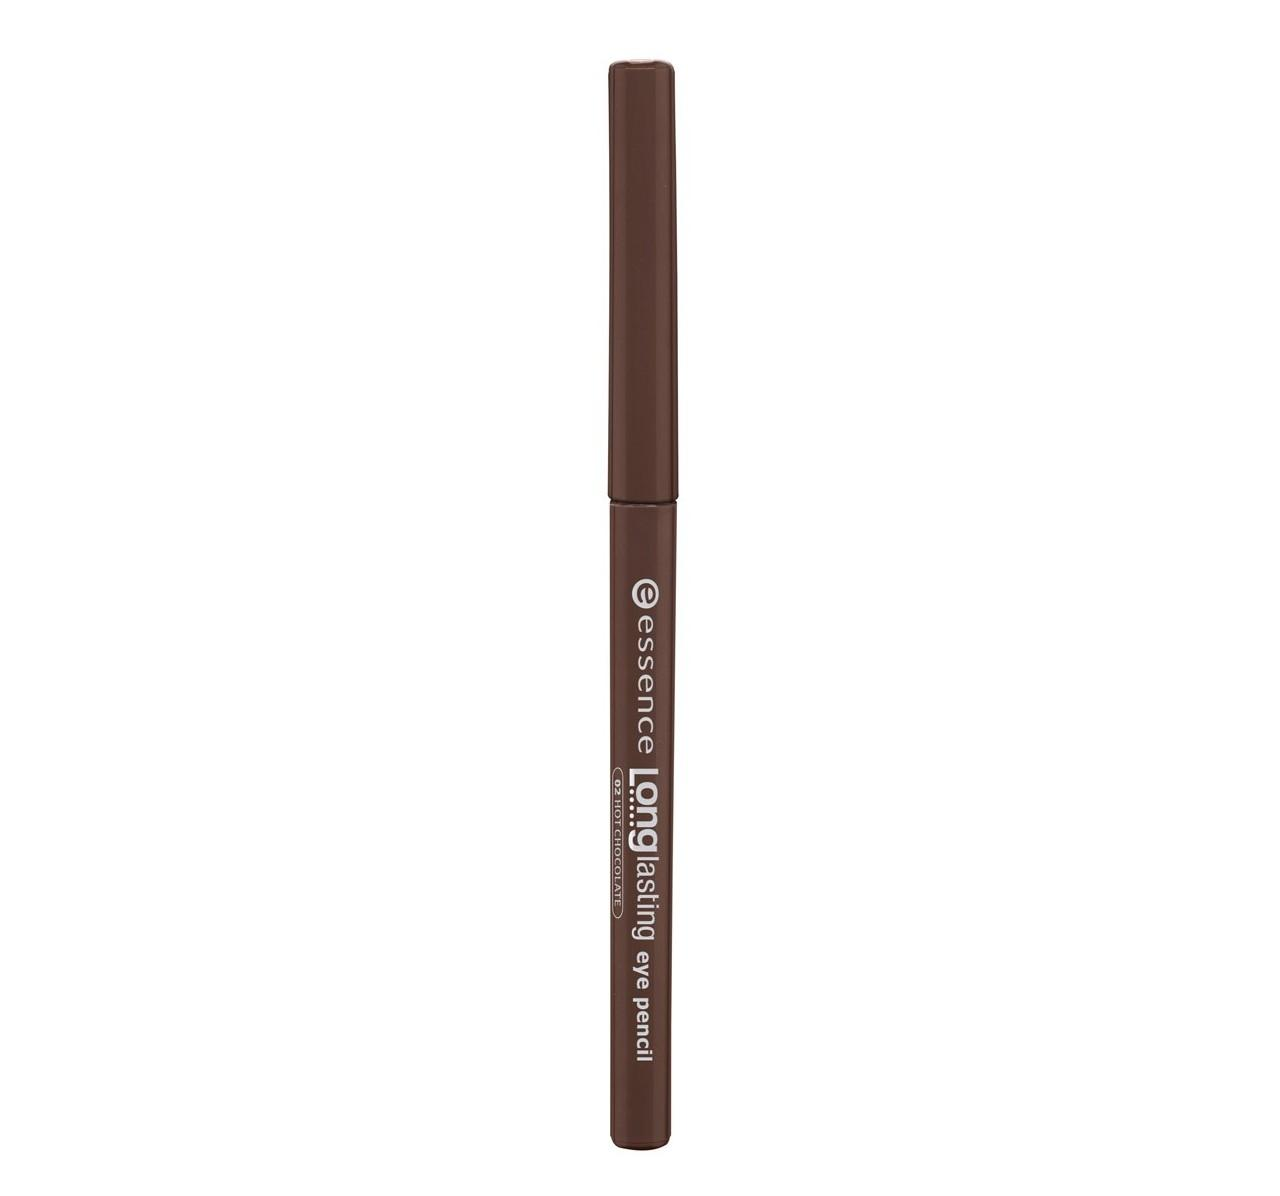 Essence long-lasting eye pencil 02